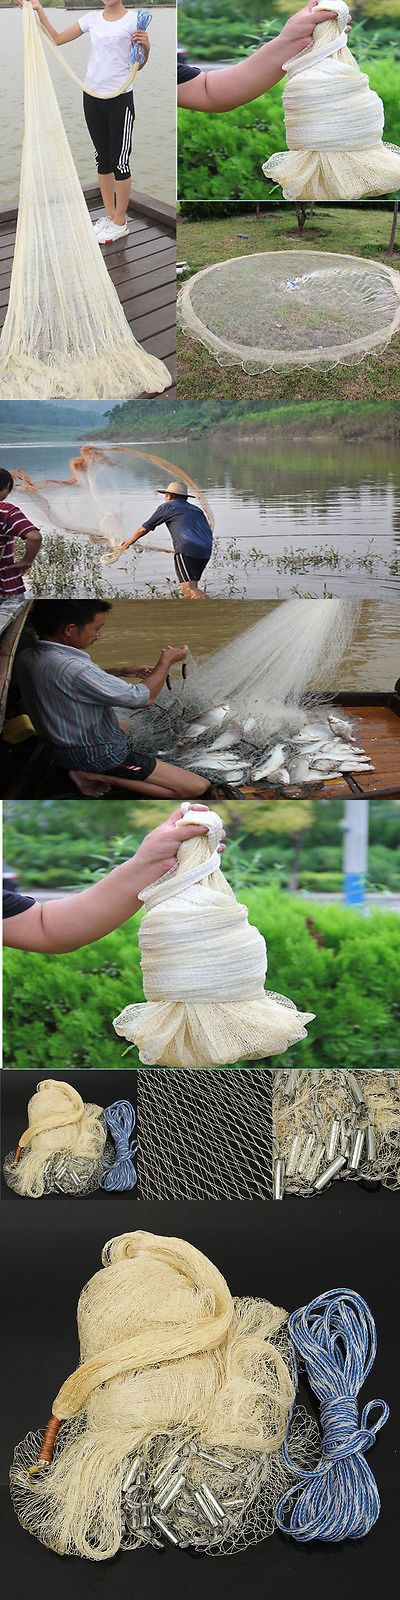 Nets 81458: 3 X 4M Big Fishing Nylon Monofilament Fish Gill Net Easy Throw For Hand Casting -> BUY IT NOW ONLY: $42.69 on eBay!